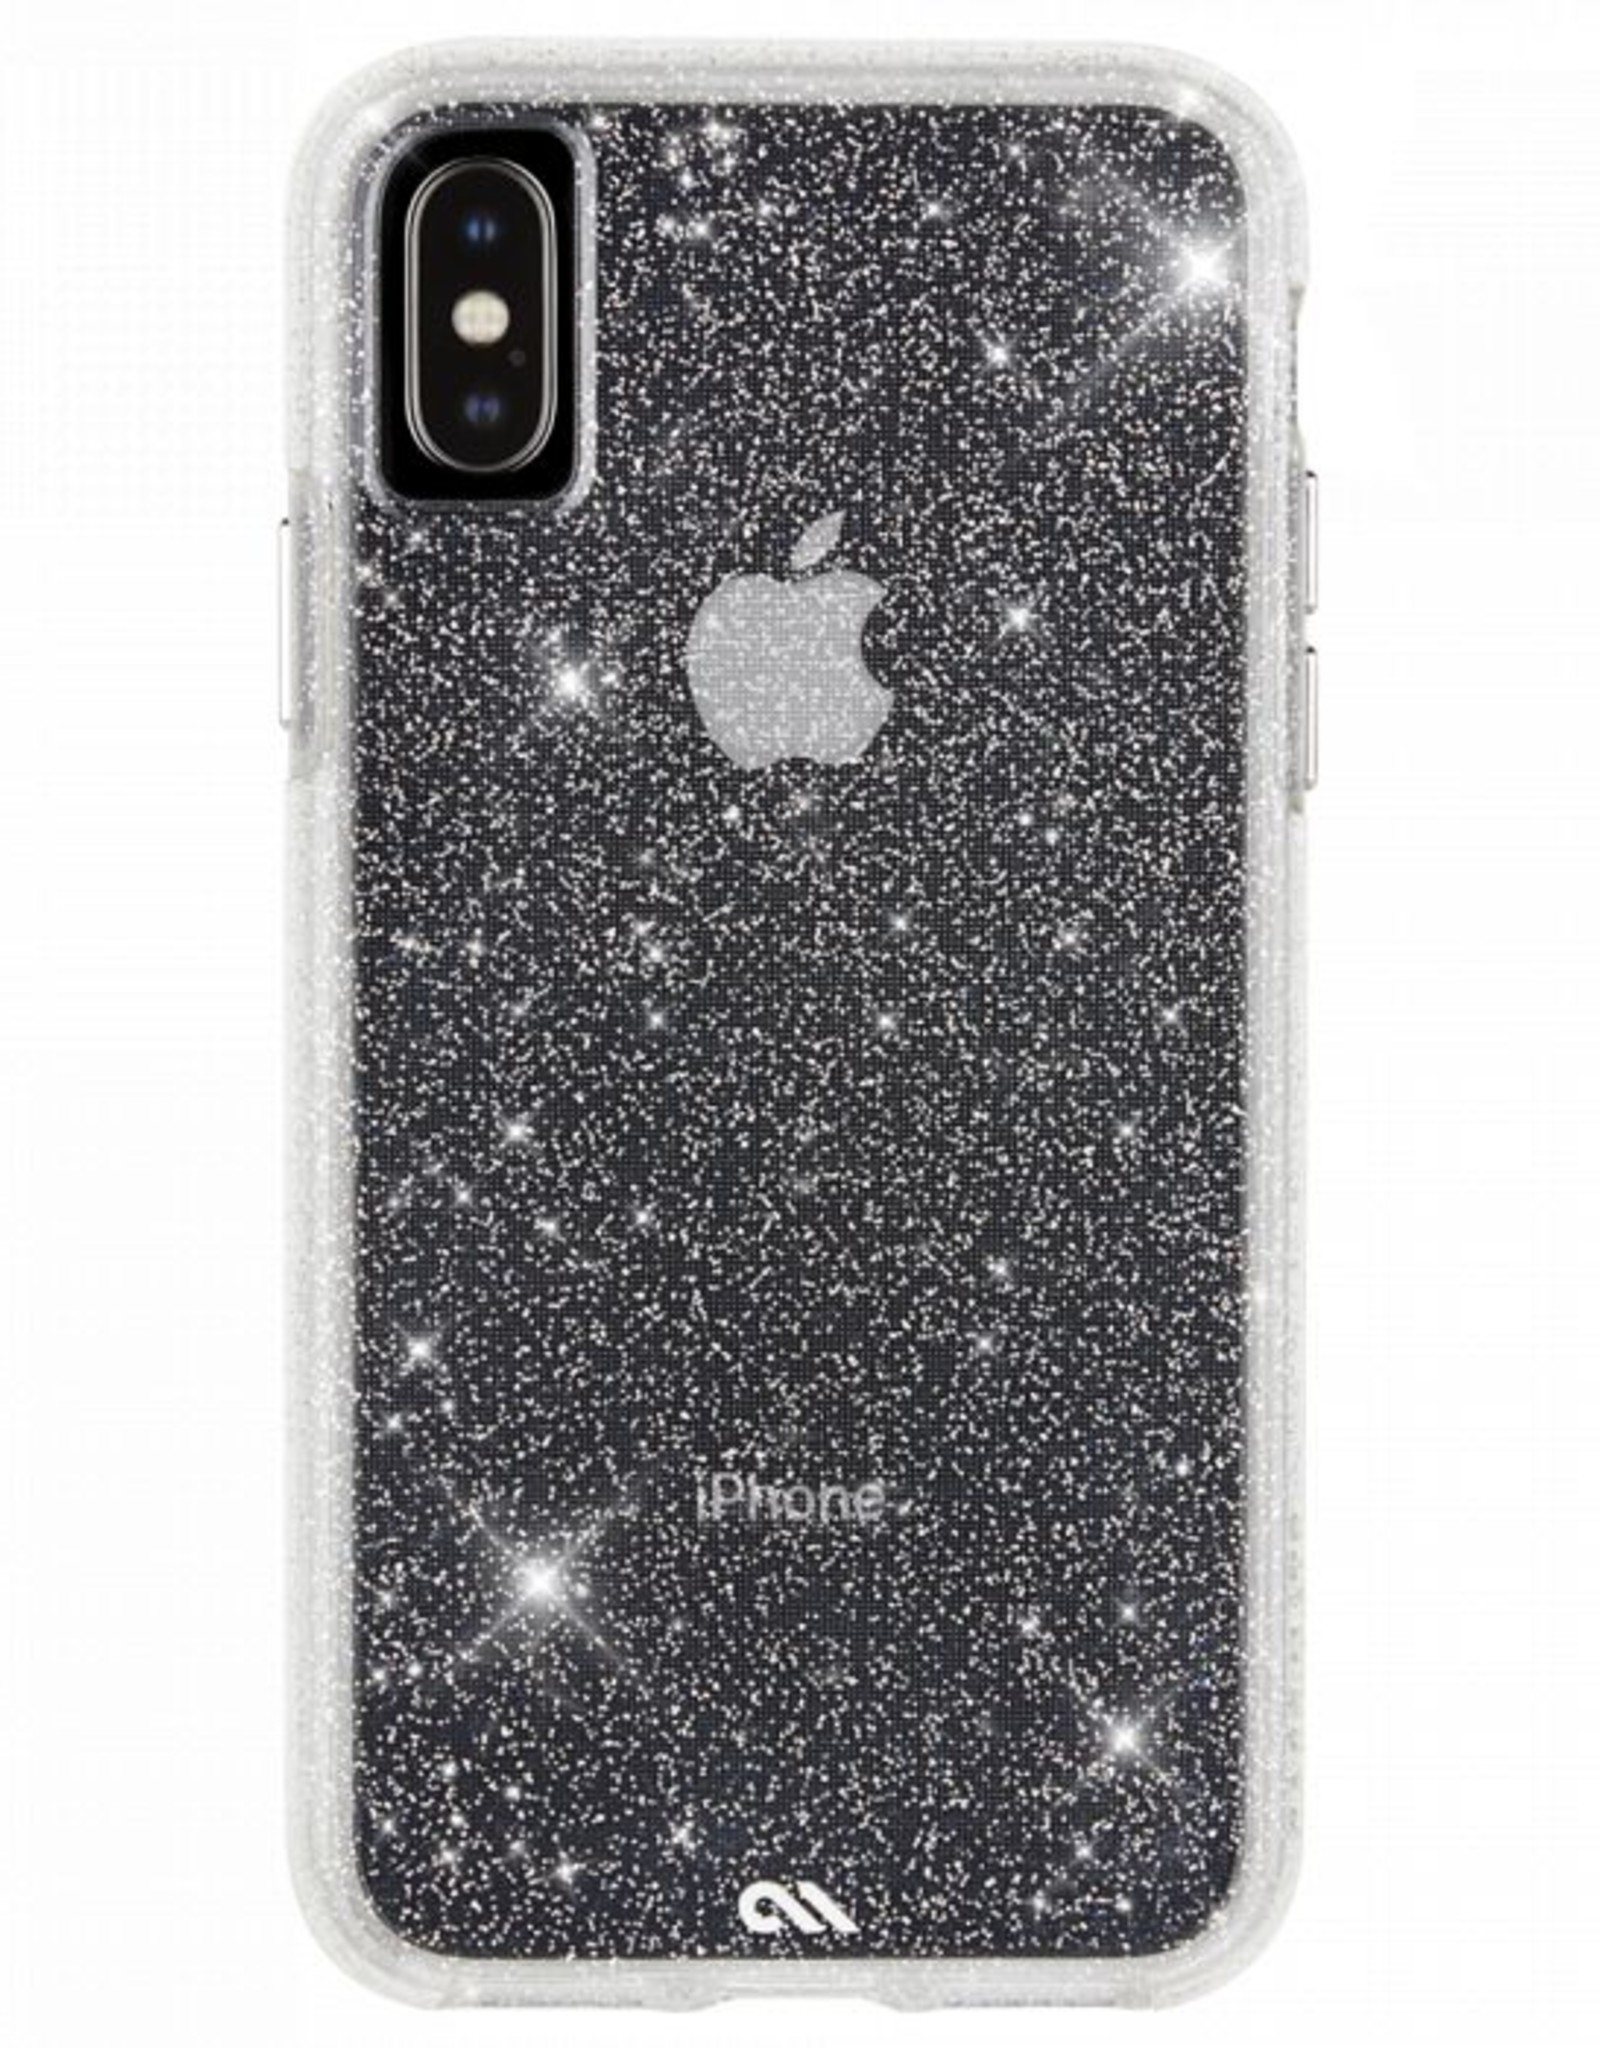 Case-Mate Case-mate | iPhone Xs Max Clear Sheer Crystal case | 15-03689